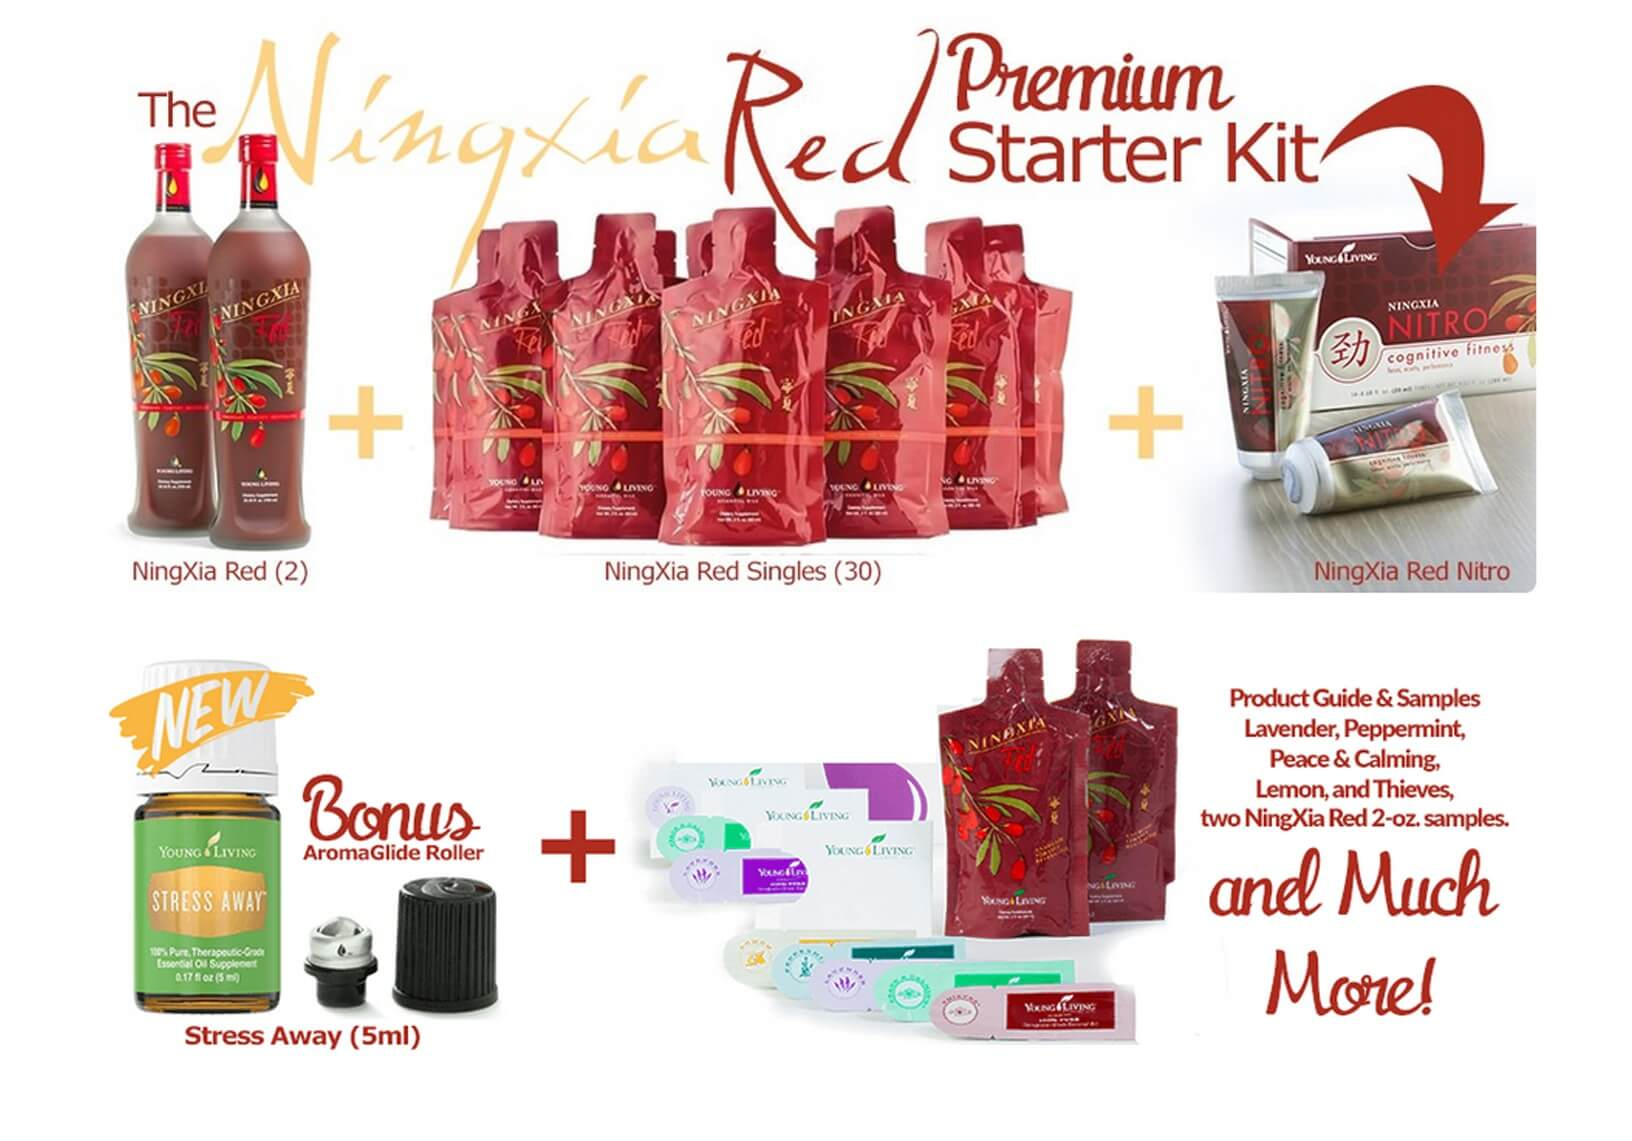 Young Living's NingXia Red Premium Starter Kit